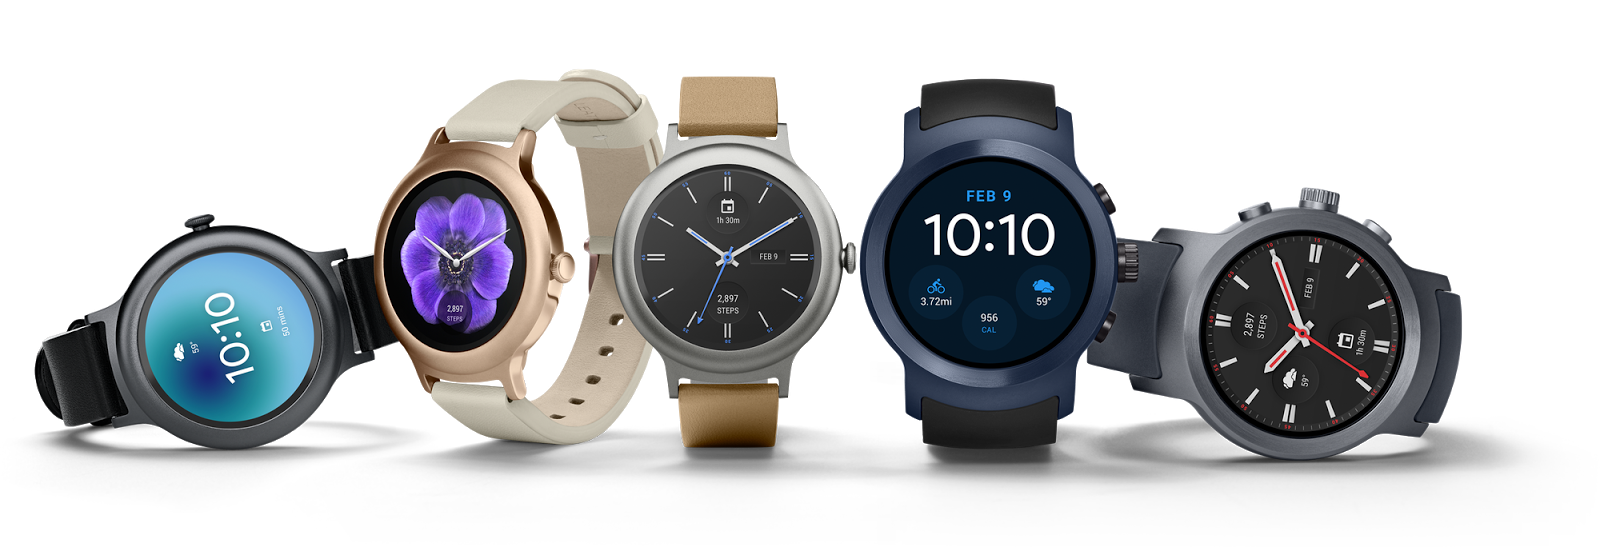 Huawei Watch Preview Users Gets Android Wear 2.0